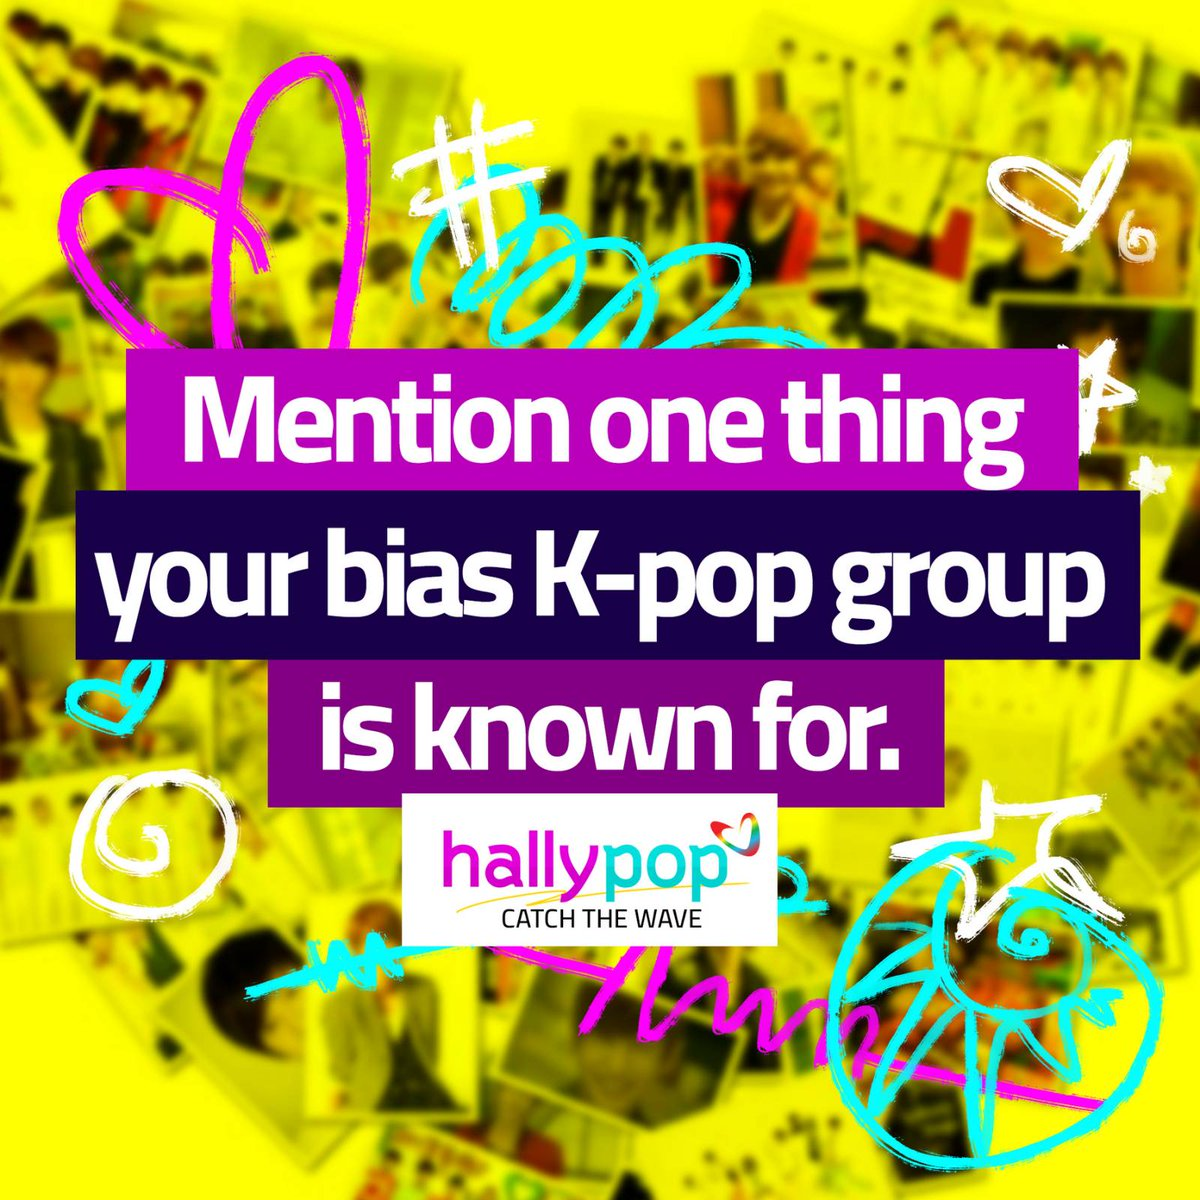 Tell us your main KPop group without actually telling us. 😁